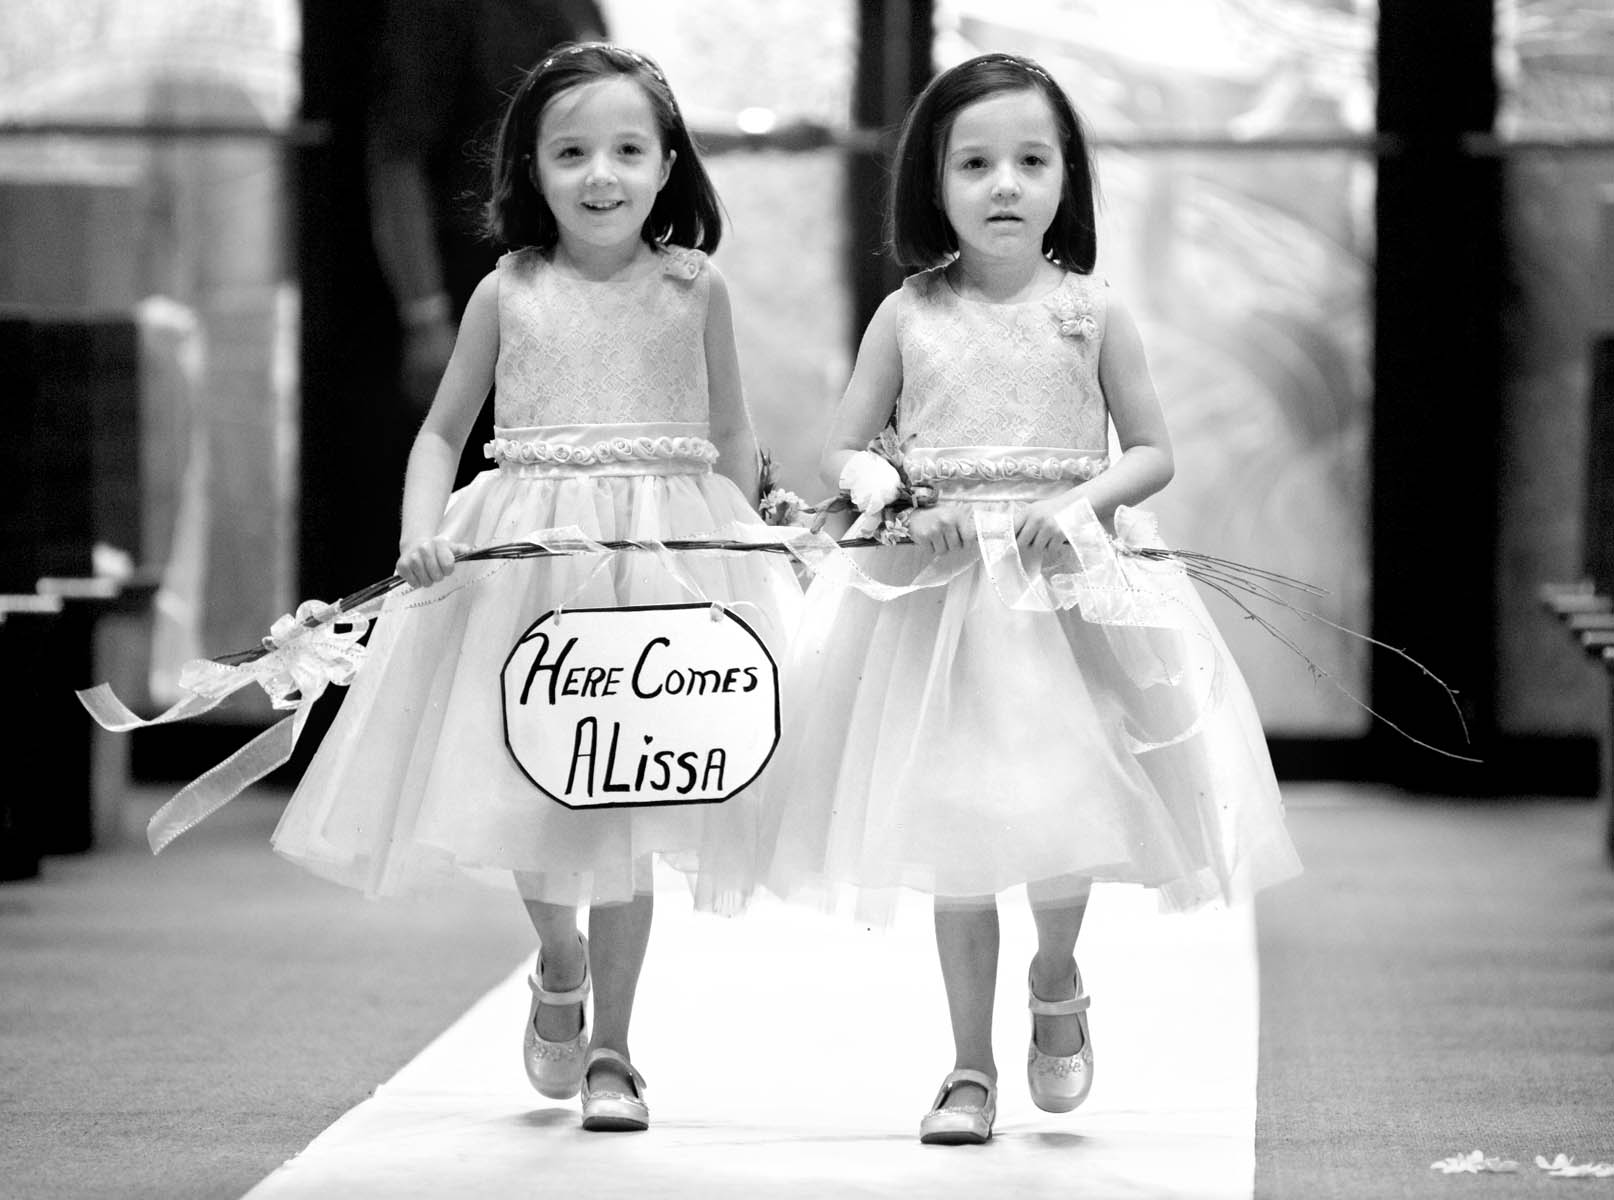 Flower girls, wedding of Alissa & Brandon at Our Saviour Catholic Church, Jacksonville. Wedding photography by Tiffany & Steve Warmowski.